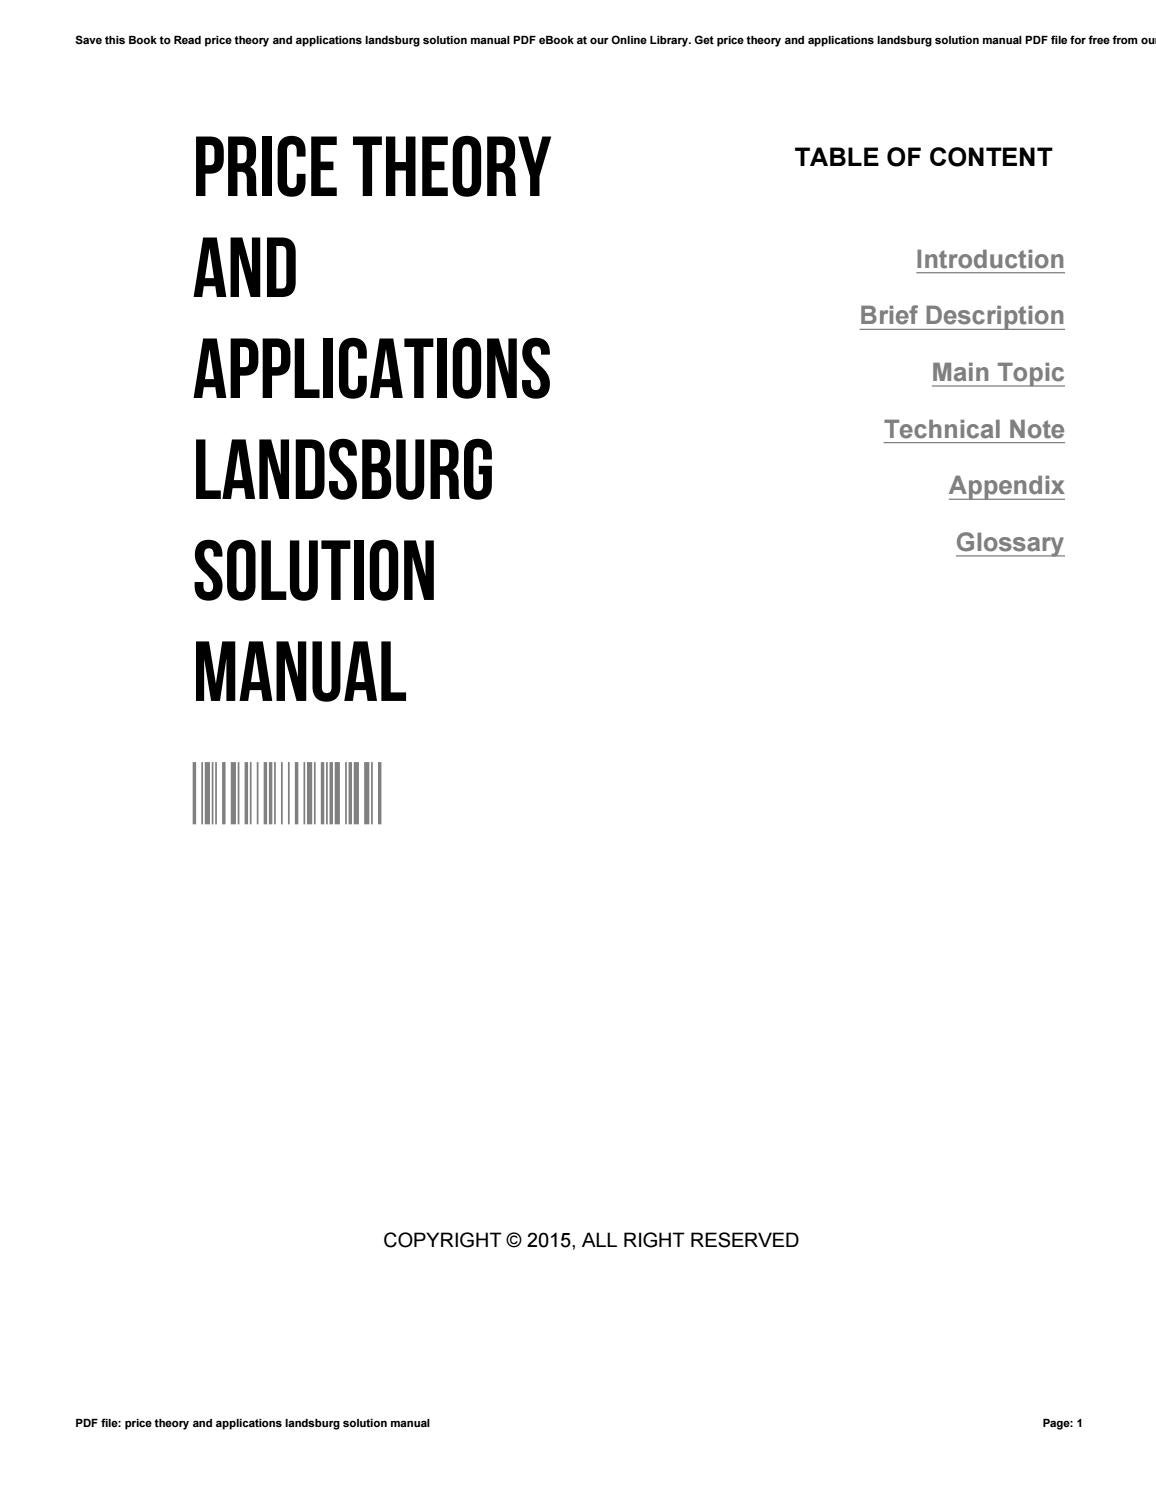 Price theory and applications landsburg solution manual by